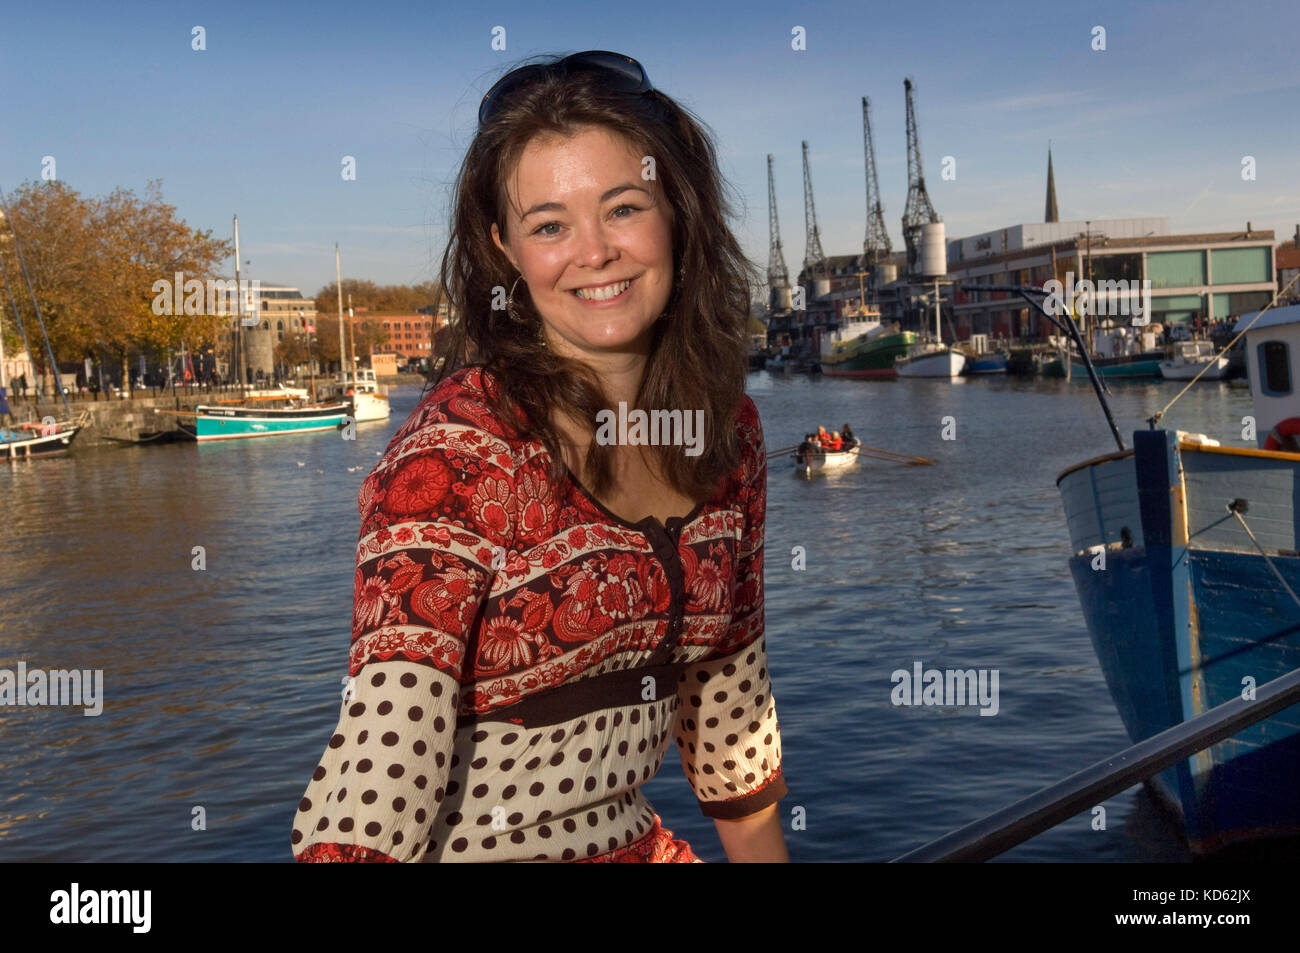 Elizabeth White, BBC producer/director/filmmaker with Natural History Unit, on her roof terrace overlooking Bristol - Stock Image